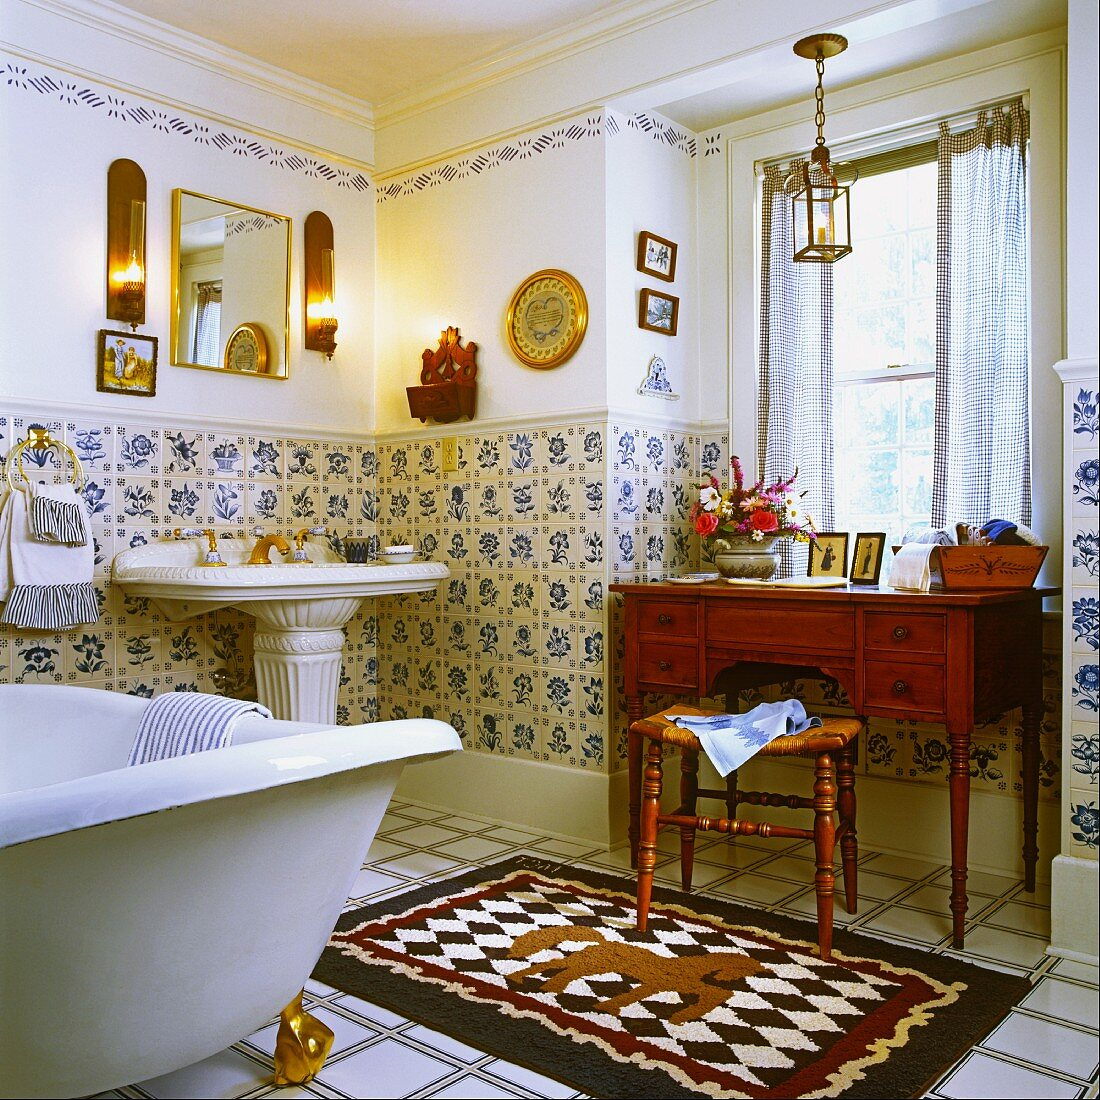 Picture of: Nostalgic Bathroom With Antique Buy Image 11093677 Living4media